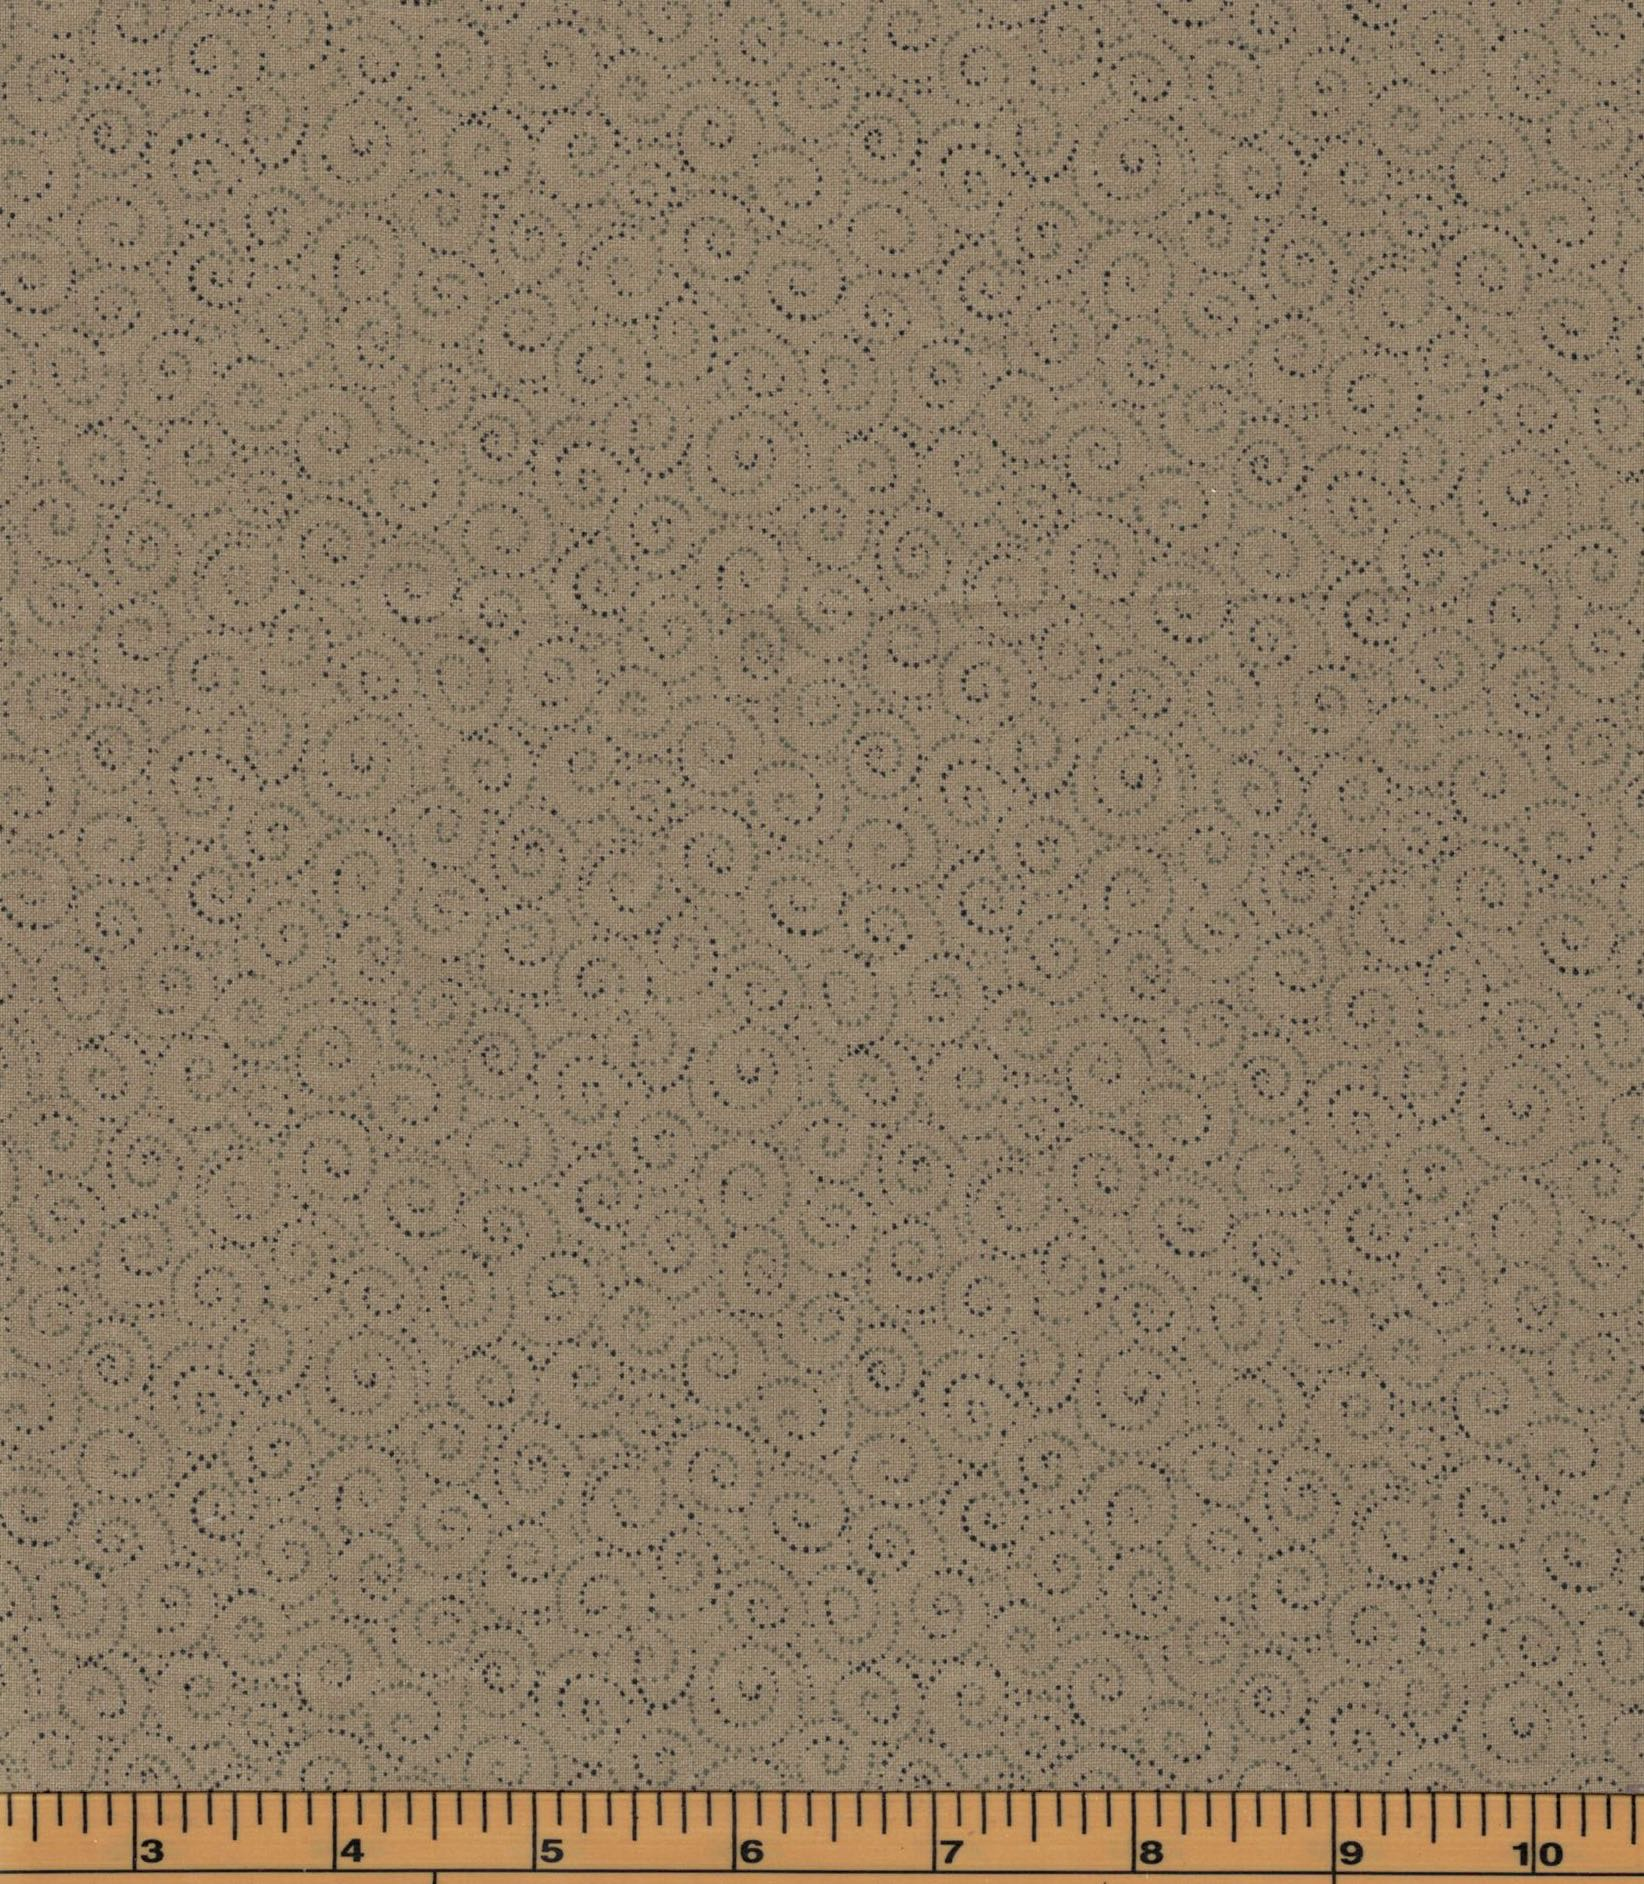 Brown Swirls on Tan Background - Fat Quarter